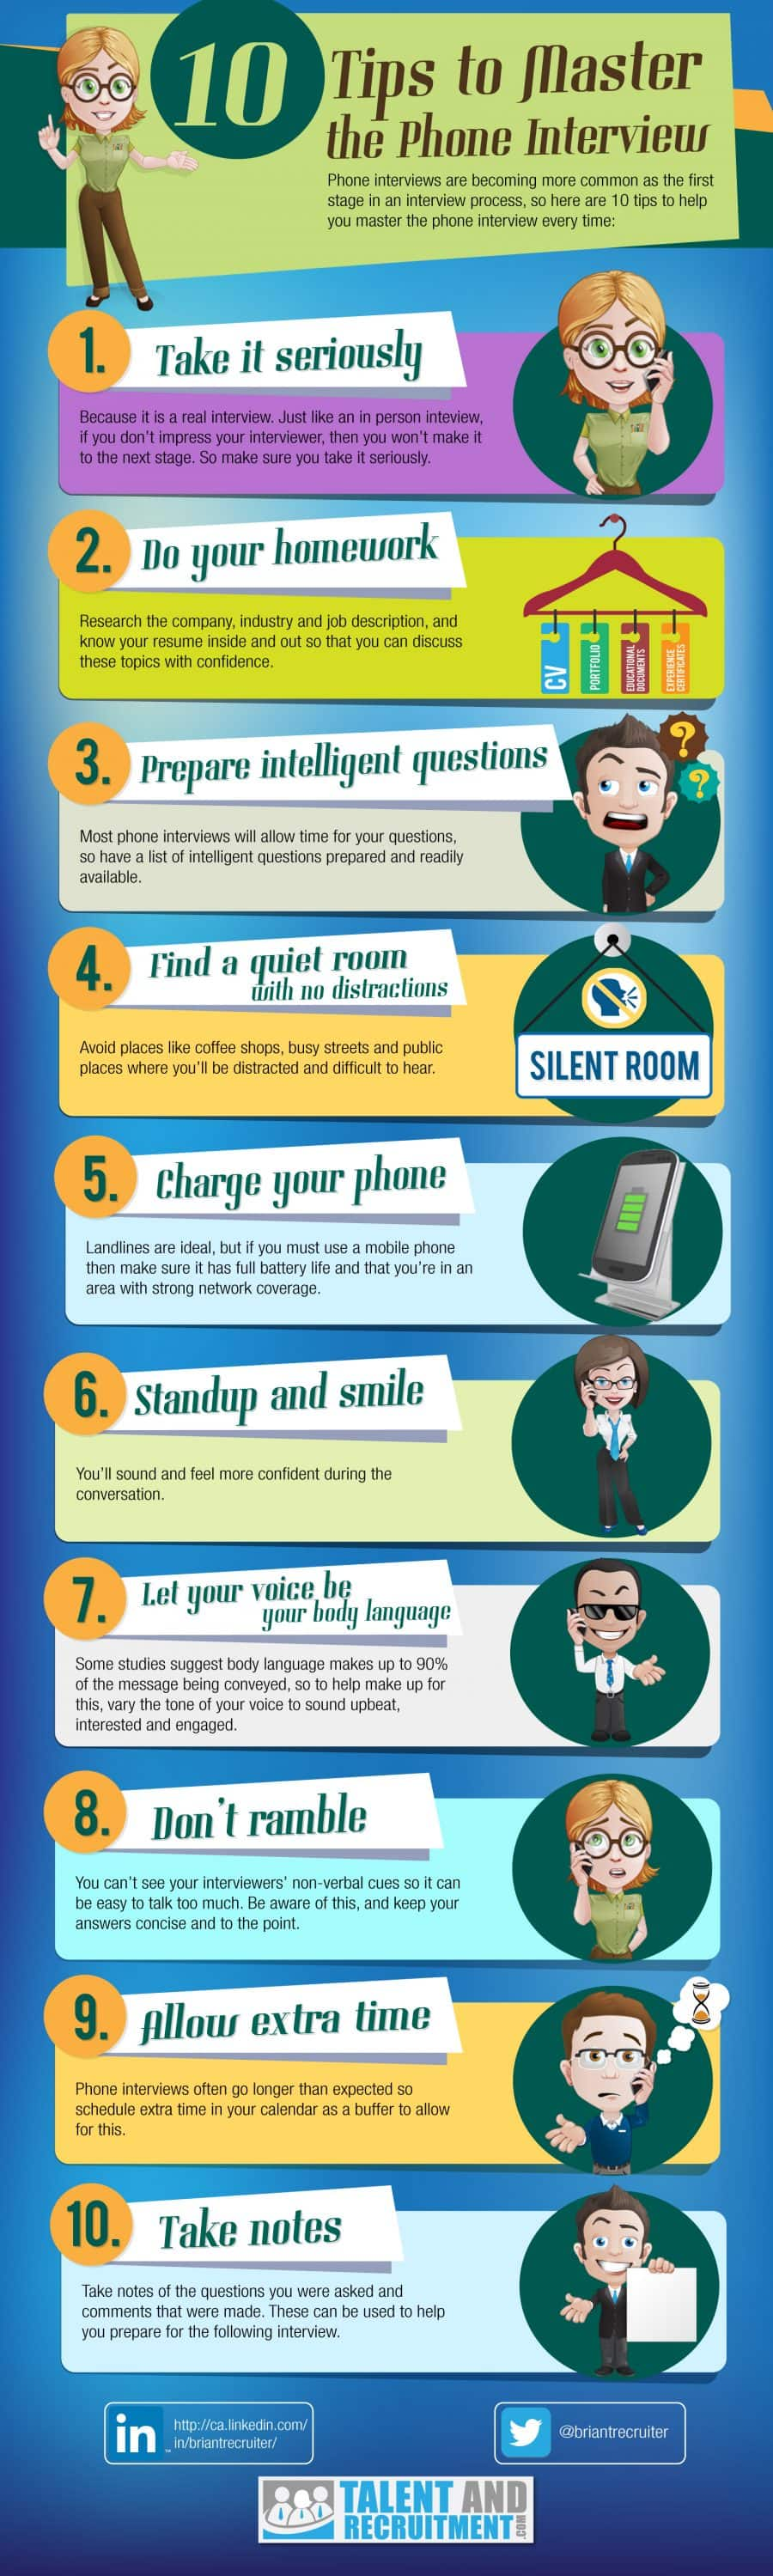 tips to the perfect phone interview 10 tips master phone interview